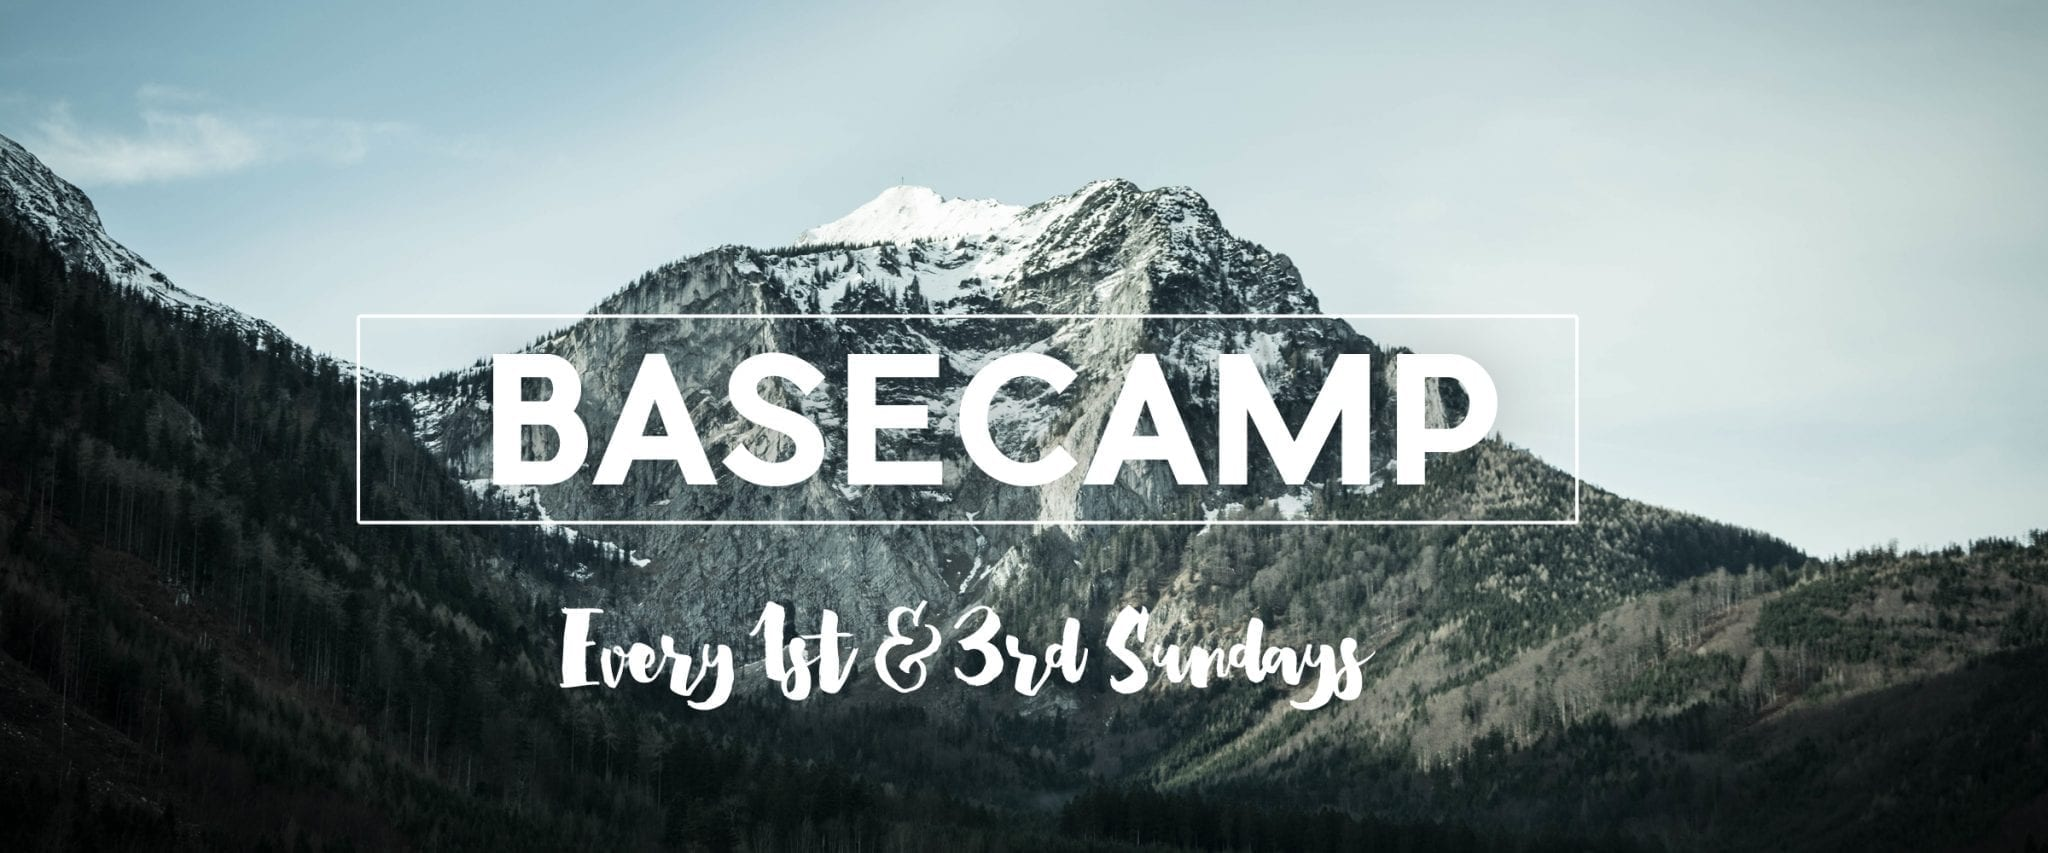 Basecamp - On Earth as in Heaven pt1